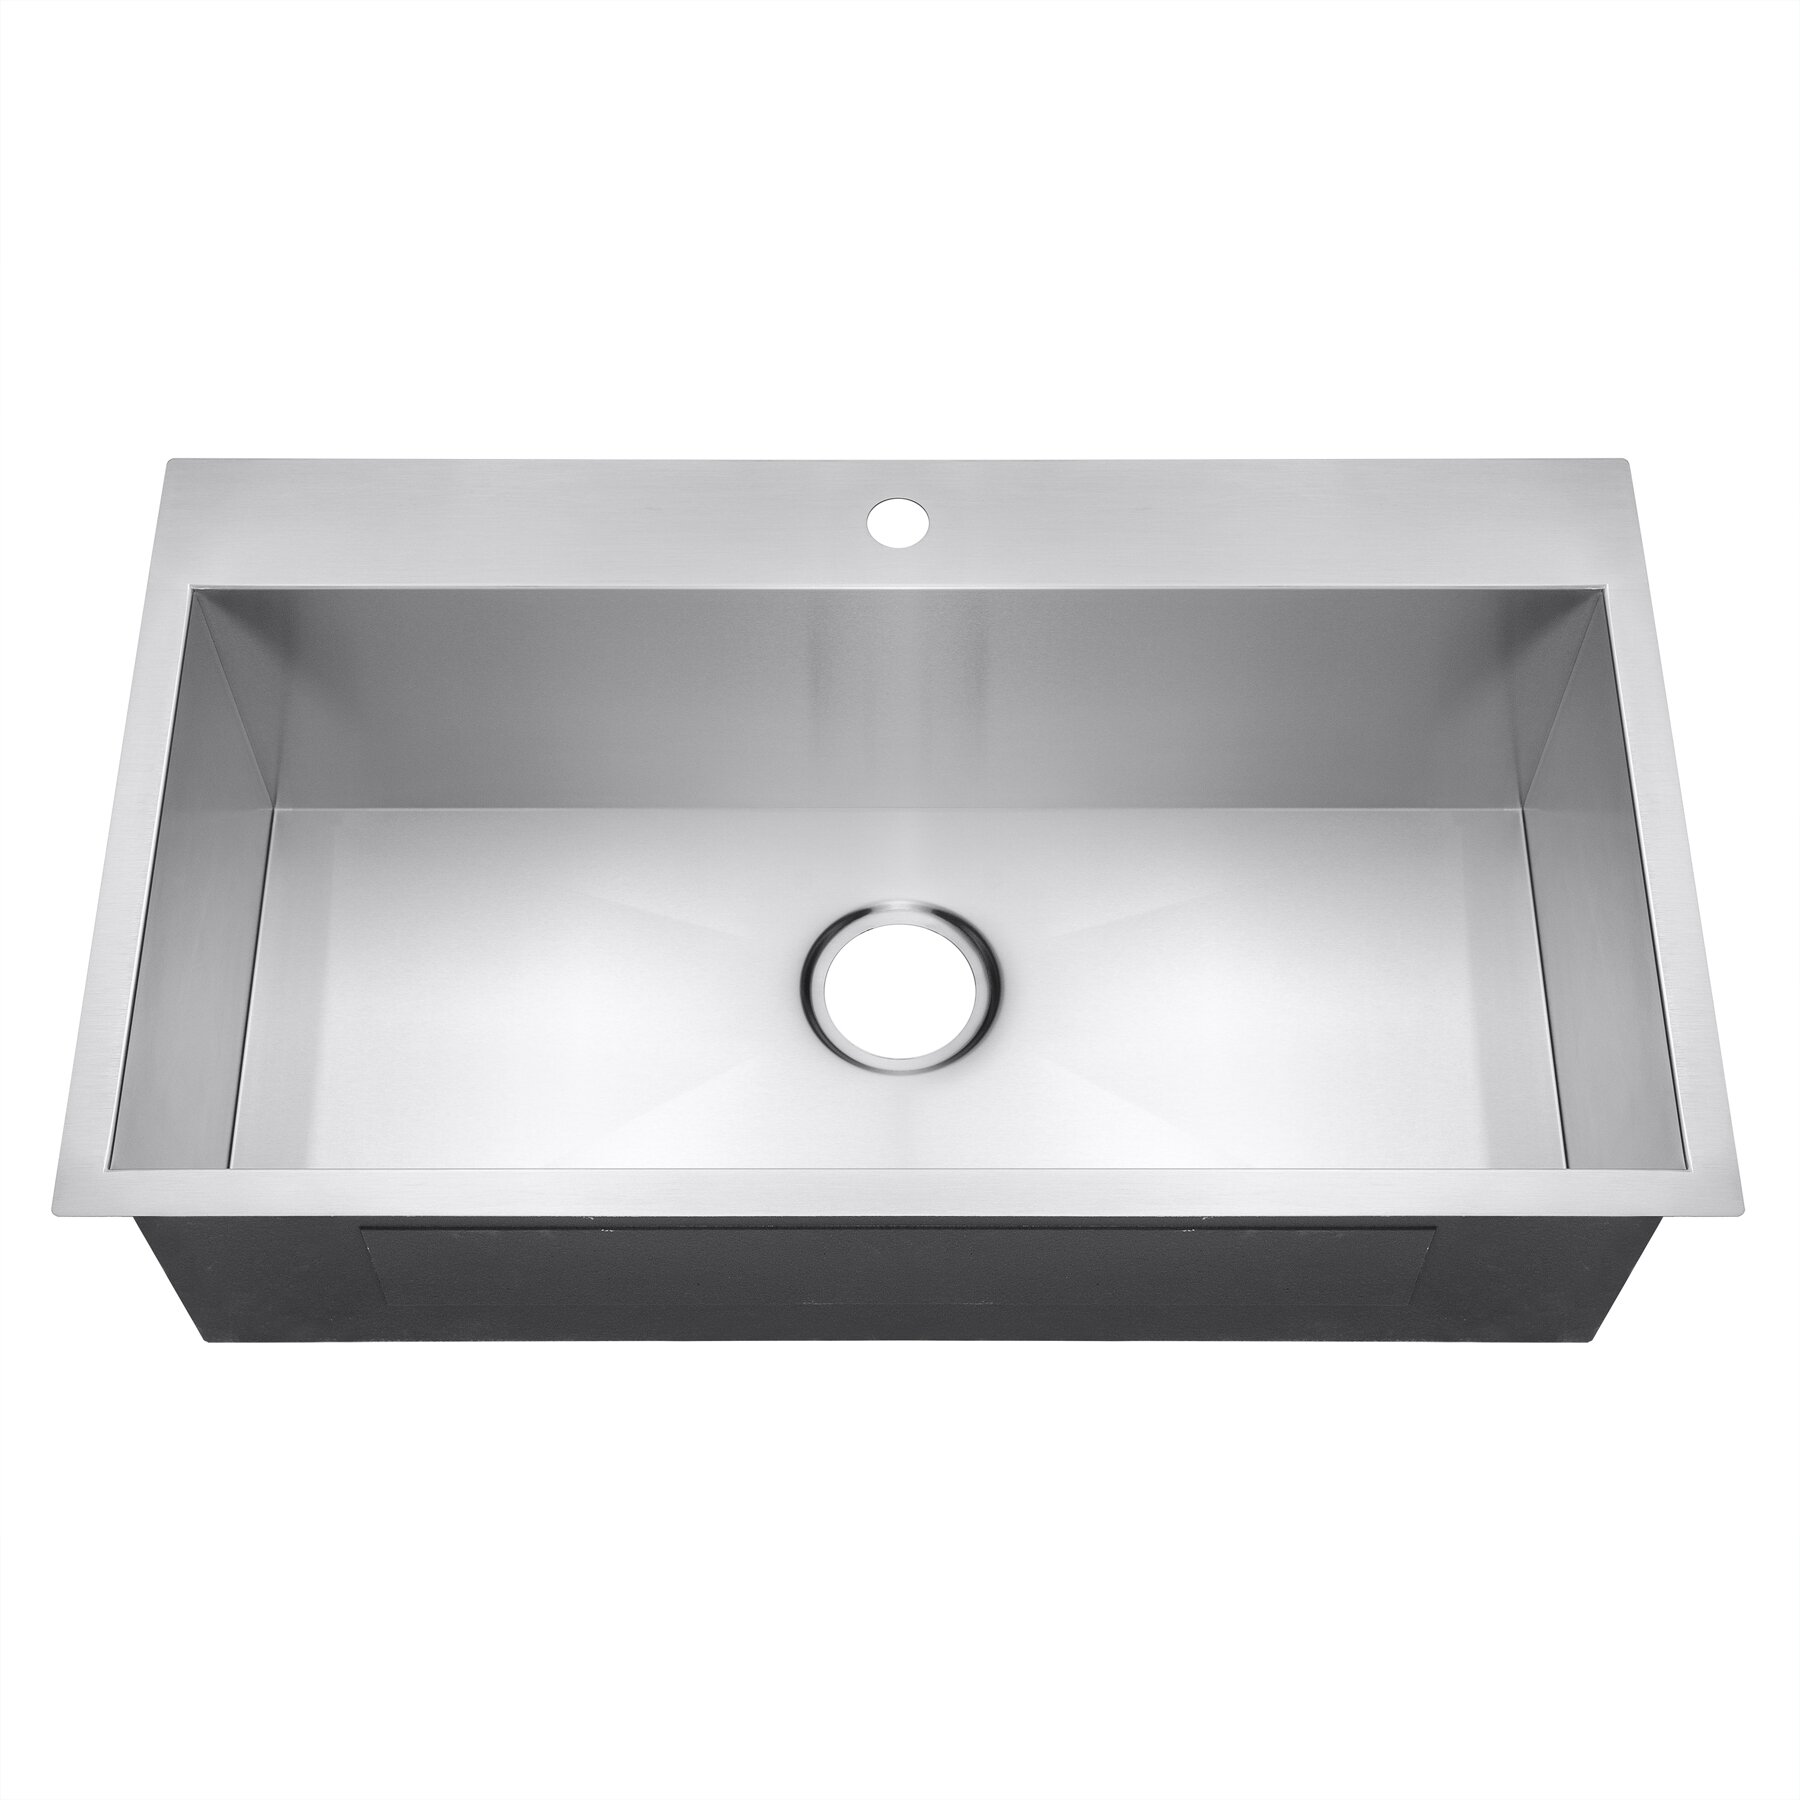 18 x 32 single bowl kitchen sink - Bowl Kitchen Sink